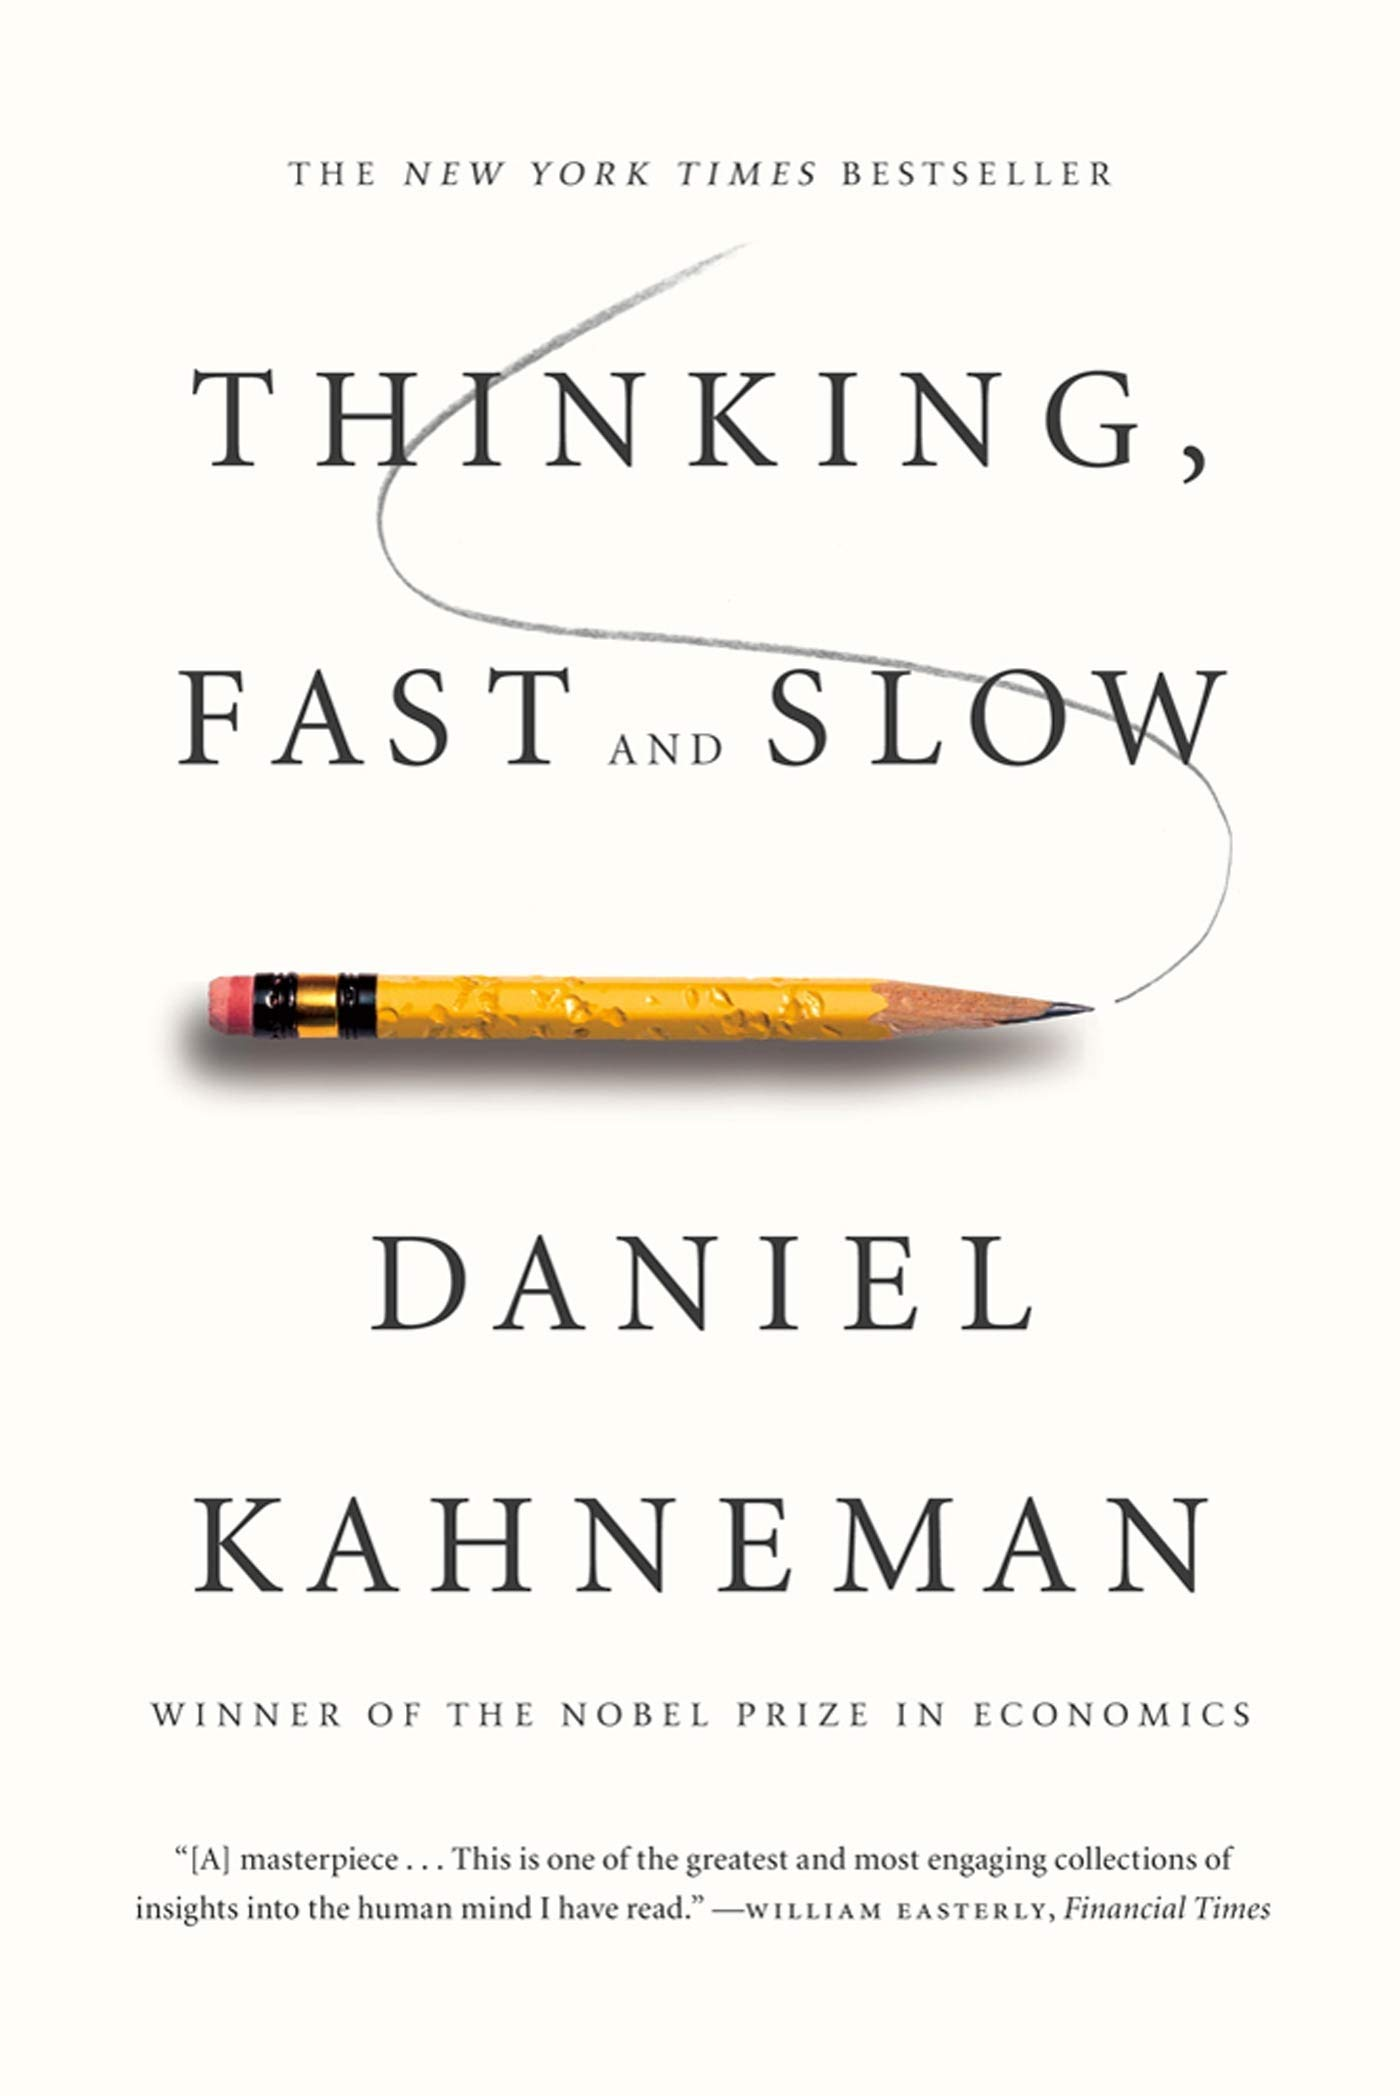 Thinking, Fast and Slow - Insights and Summary